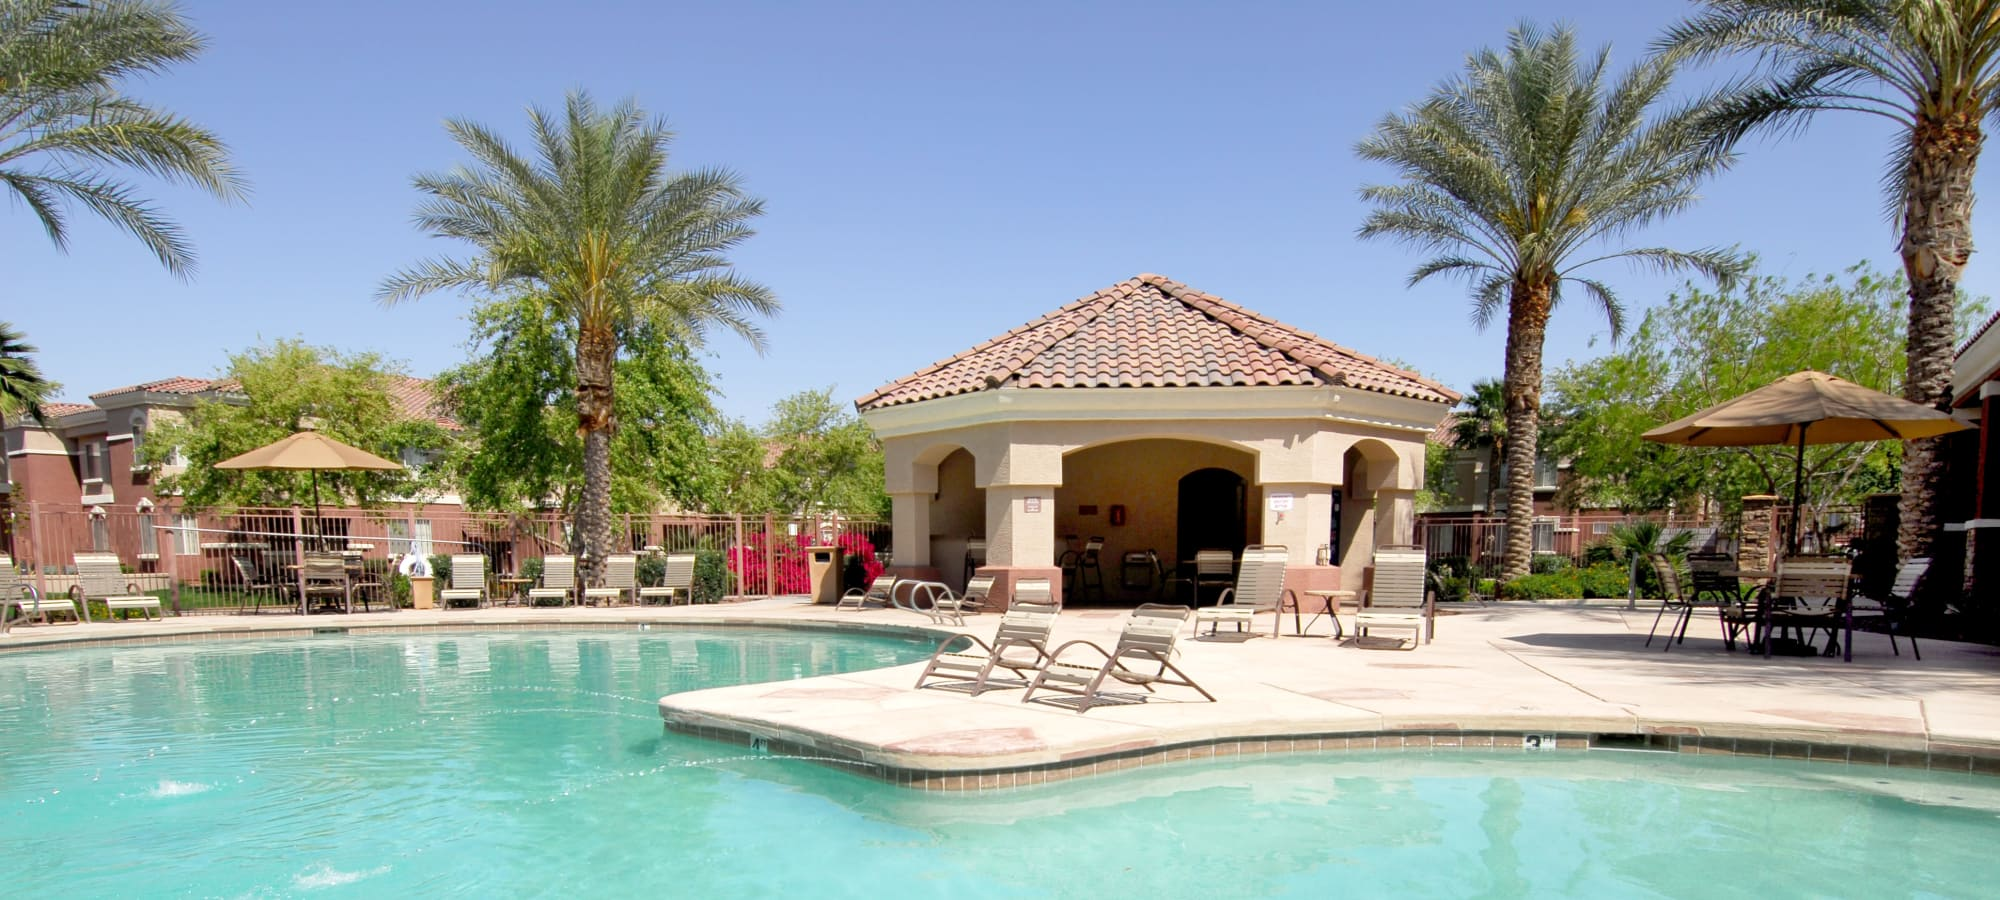 Resort-style swimming pool with lounge chairs at Remington Ranch in Litchfield Park, Arizona